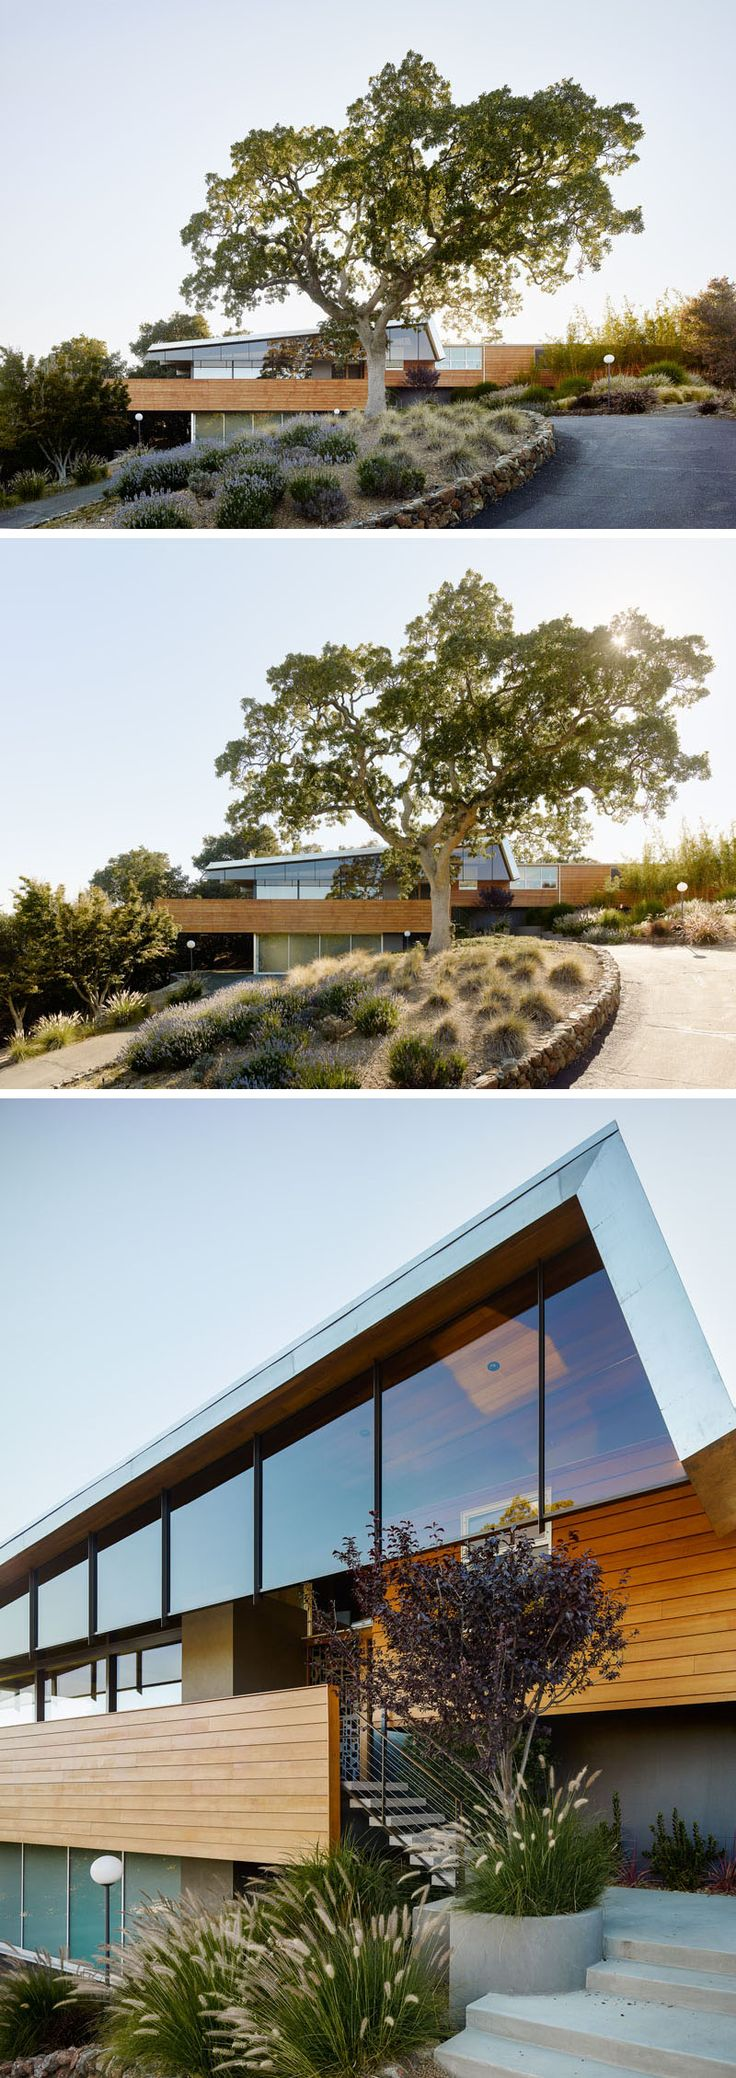 A Contemporary Redesign For A Mid Century Home In Los Gatos, California